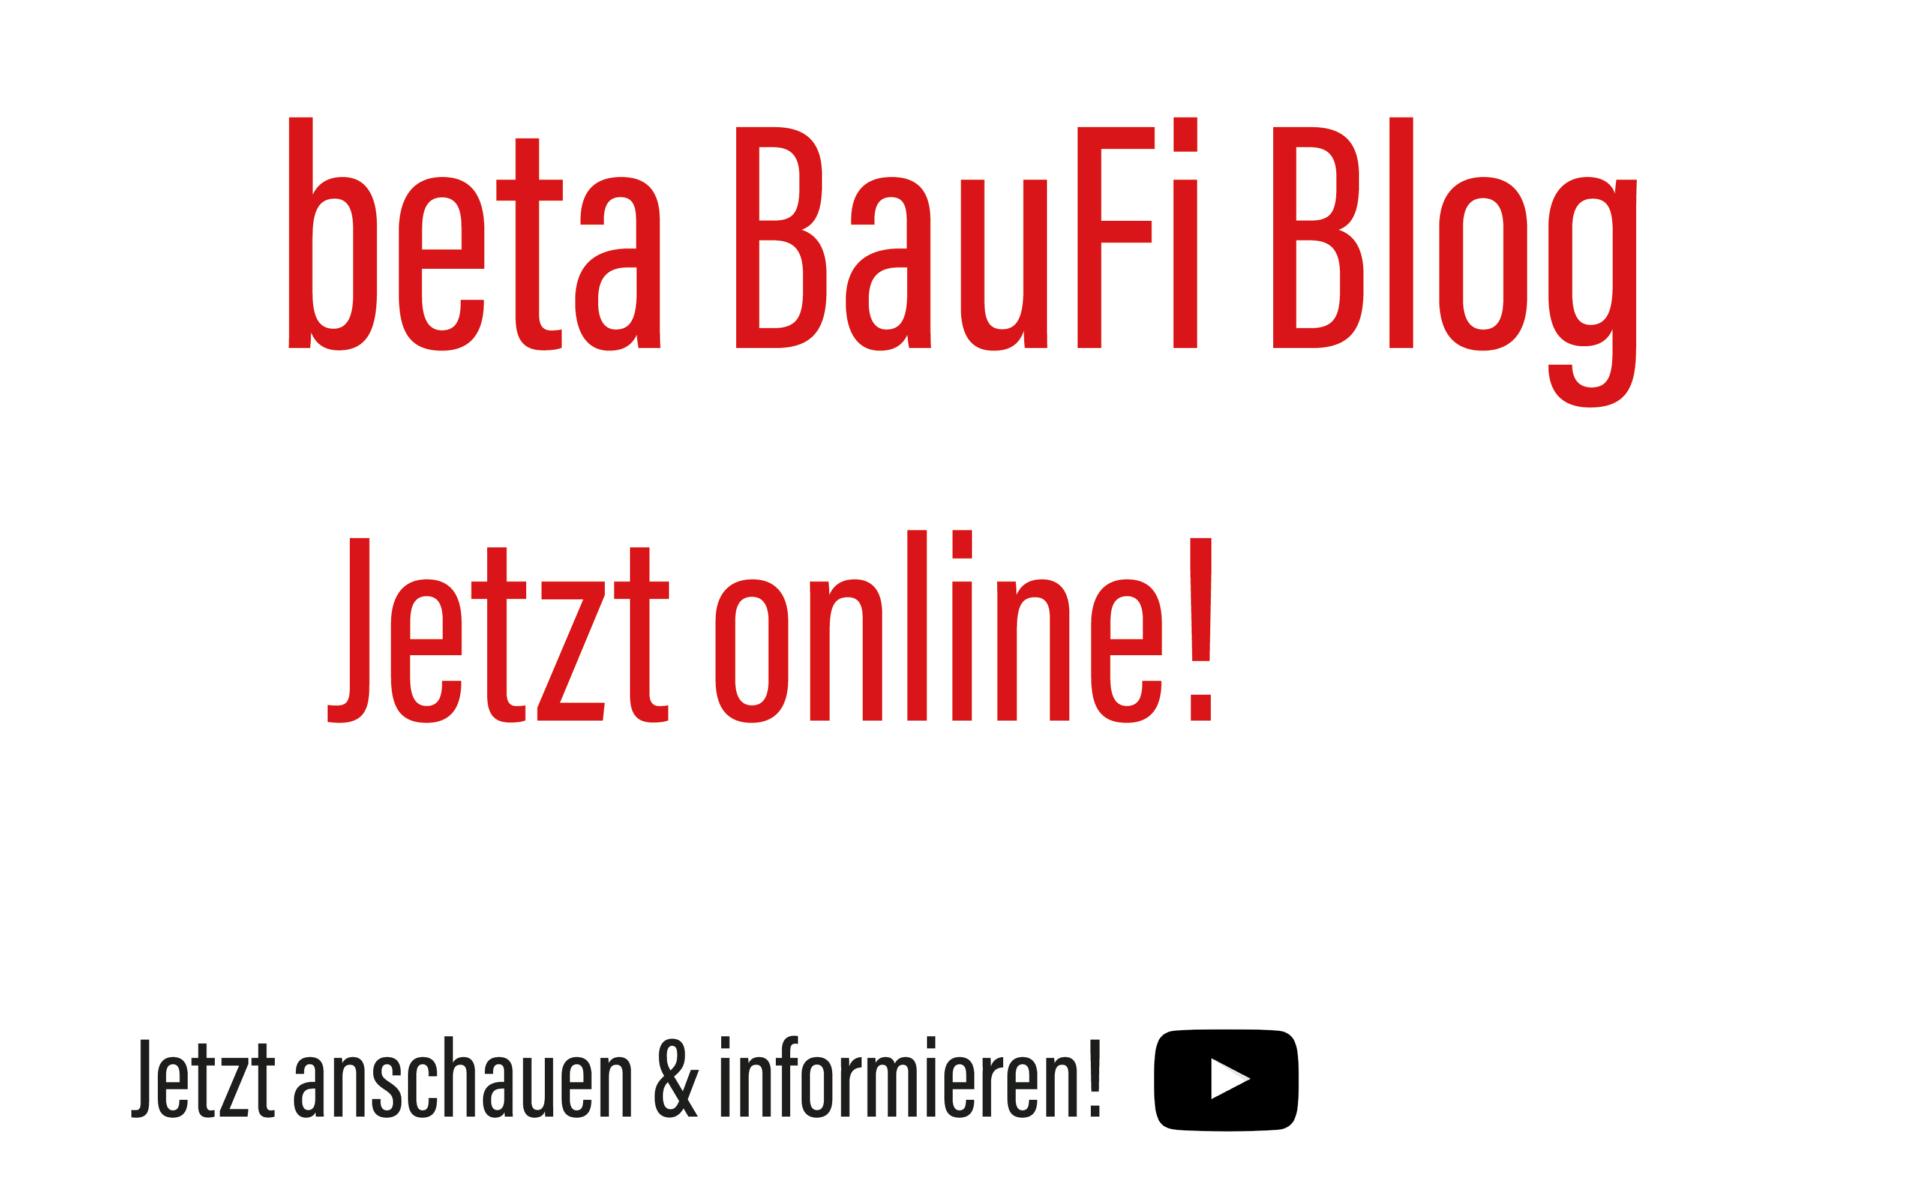 beta BauFi Blog